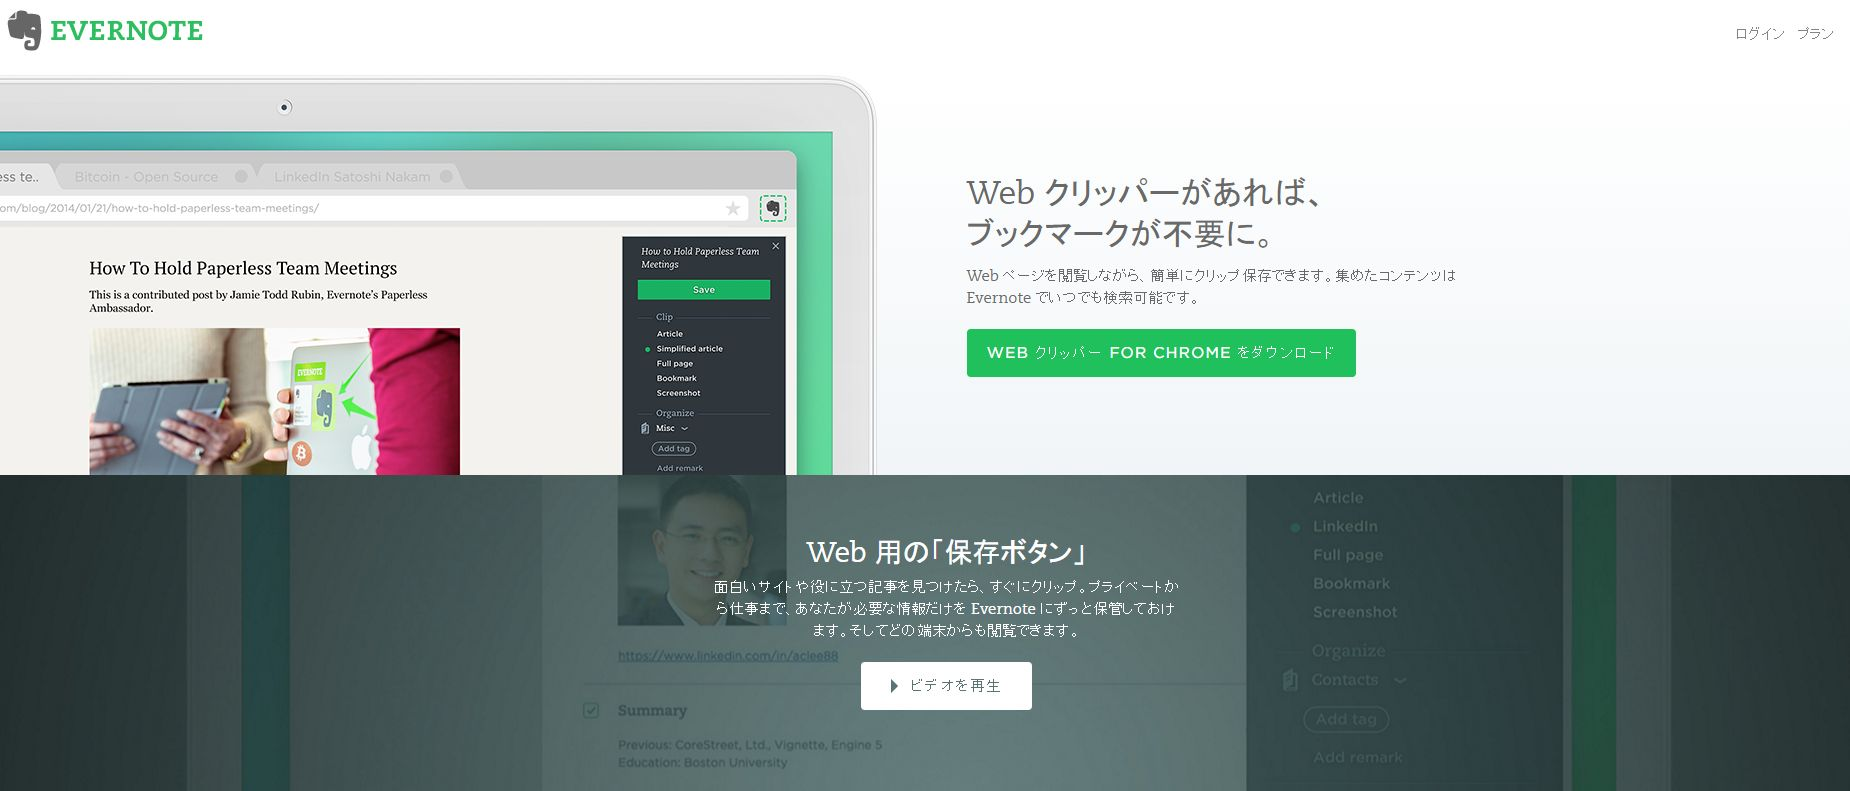 EvernoteWebClipperをパソコンとiphoneで使う方法を解説!